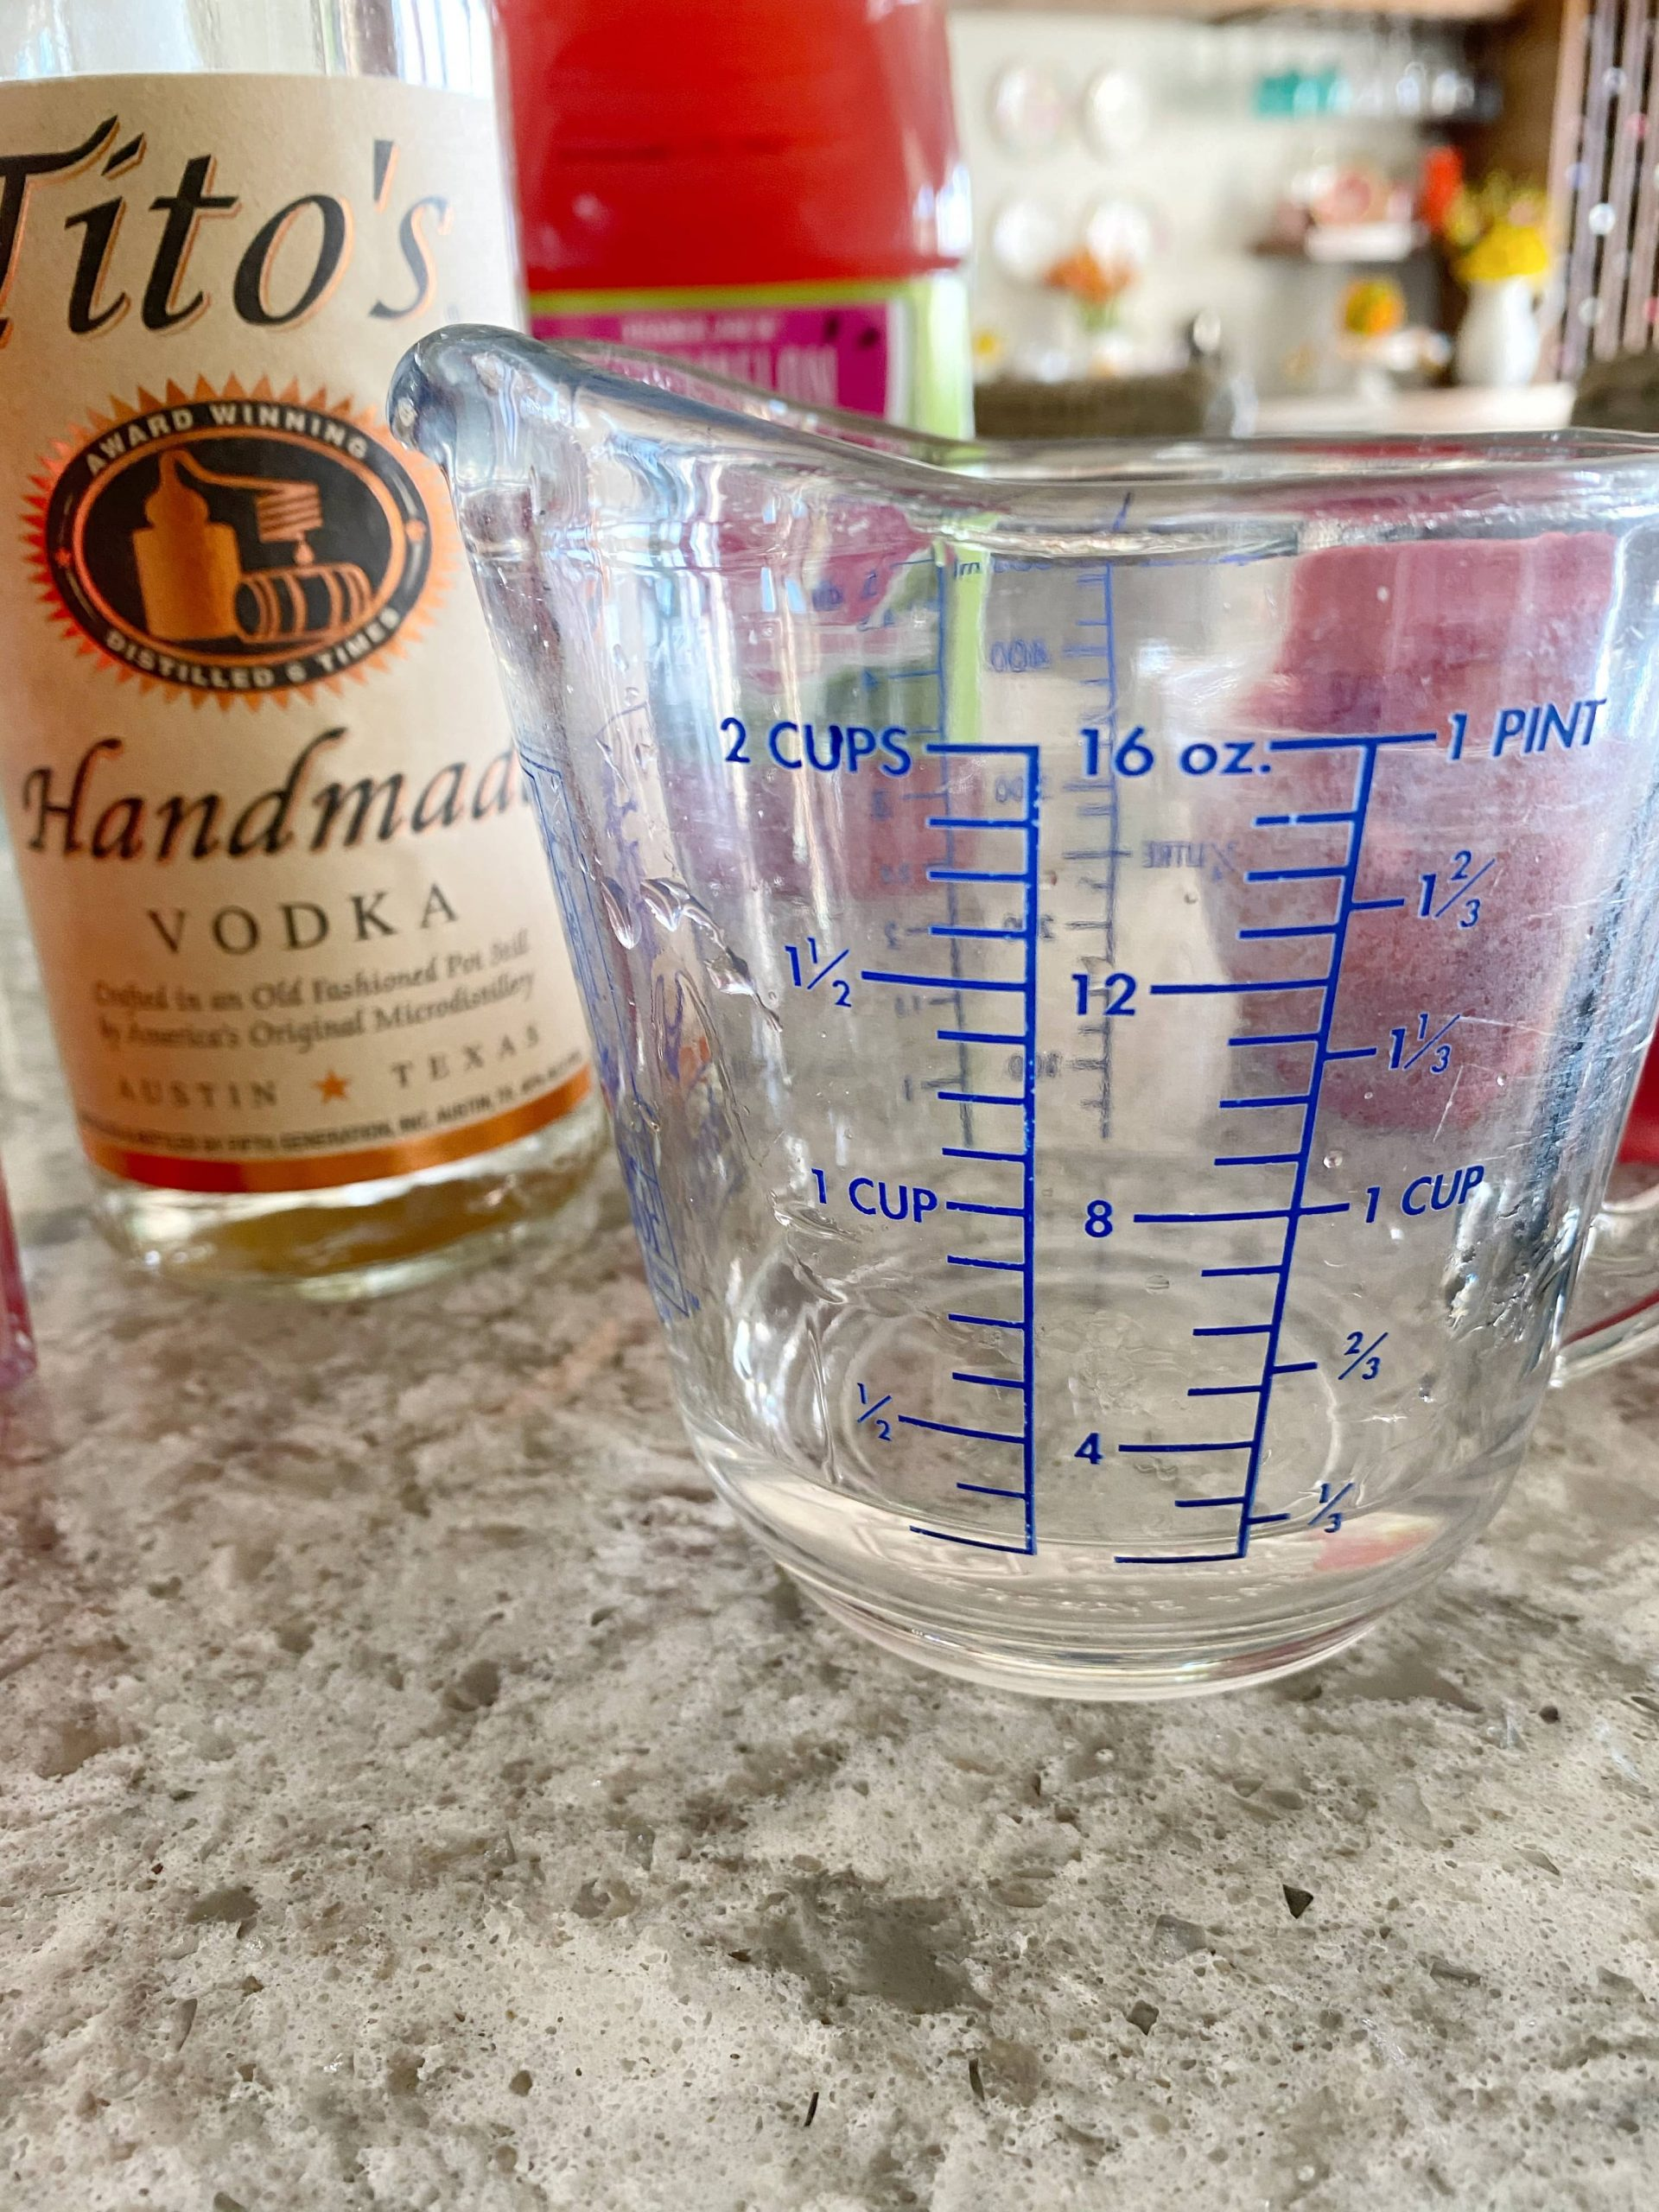 Tito's vodka in measuring cup